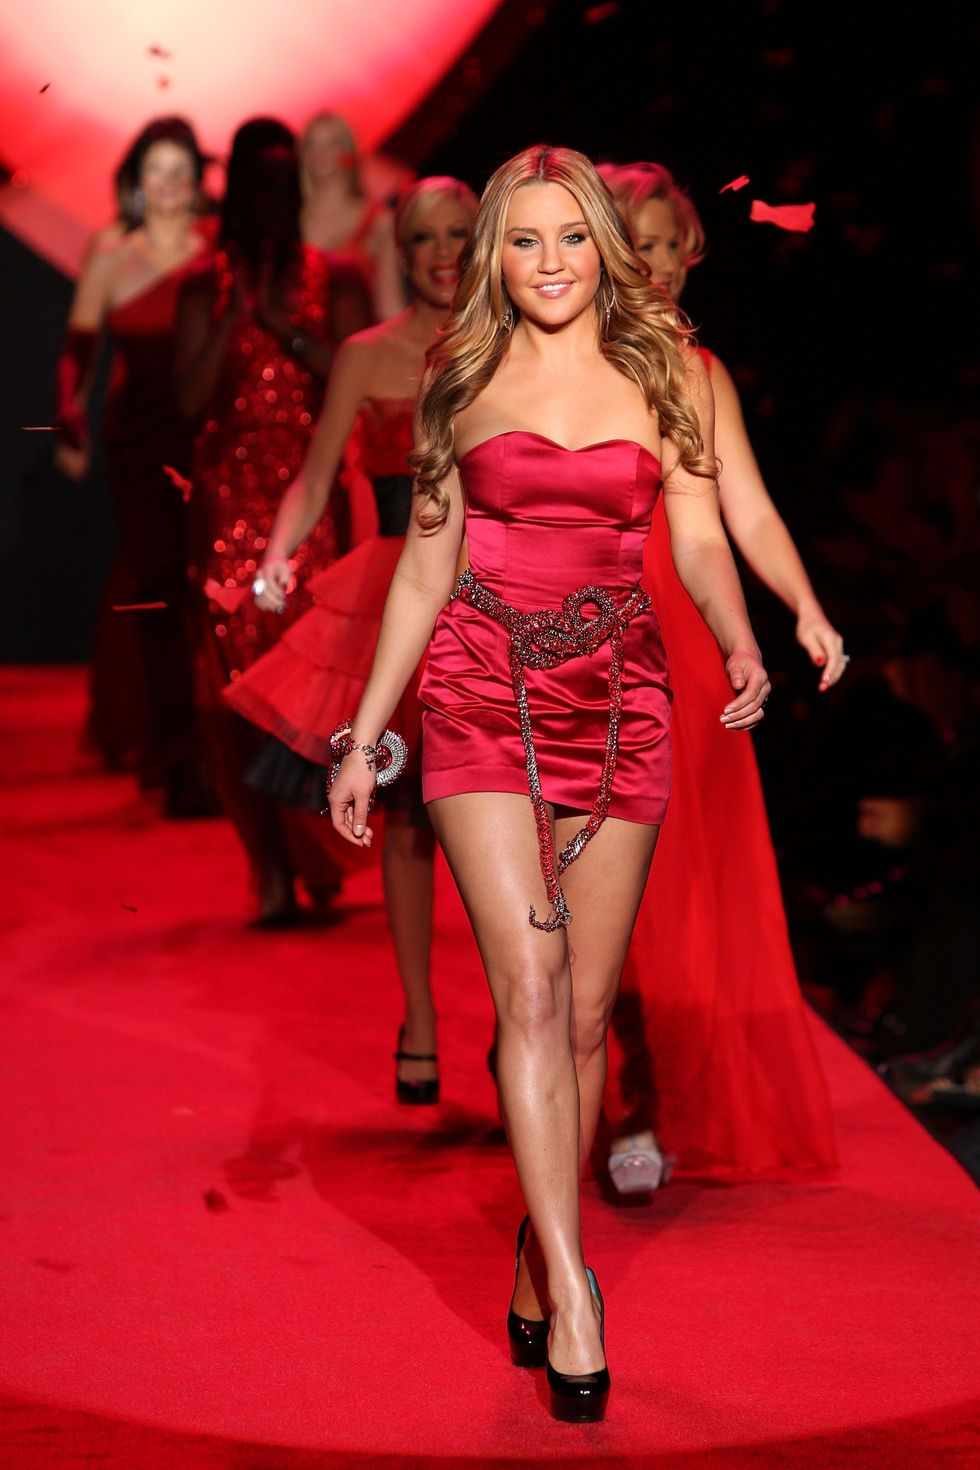 amanda-bynes-heart-truth-red-dress-collection-2009-fashion-show-01